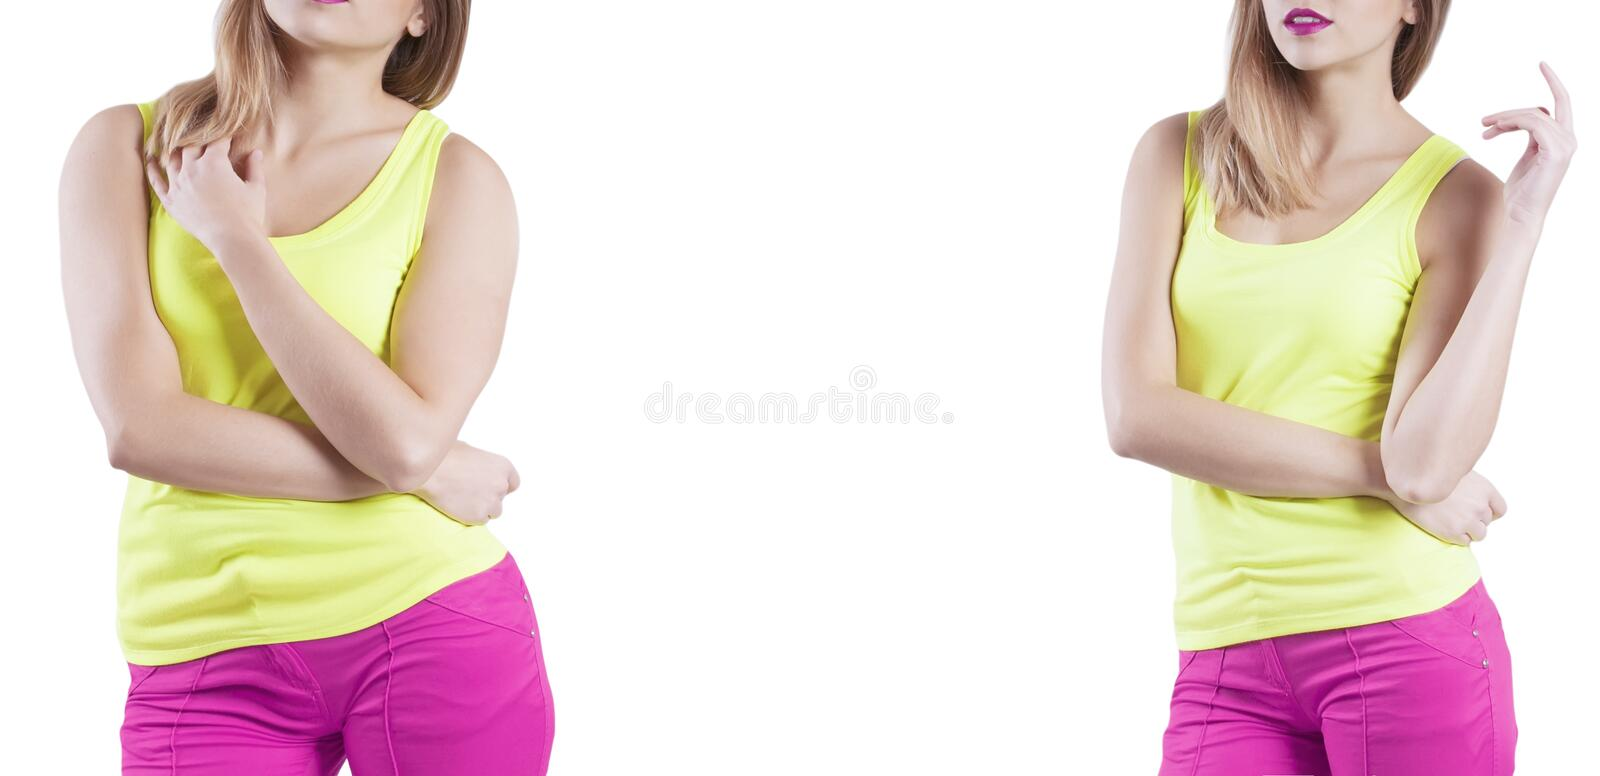 Girl body before and after the diet excess loss health stock photos